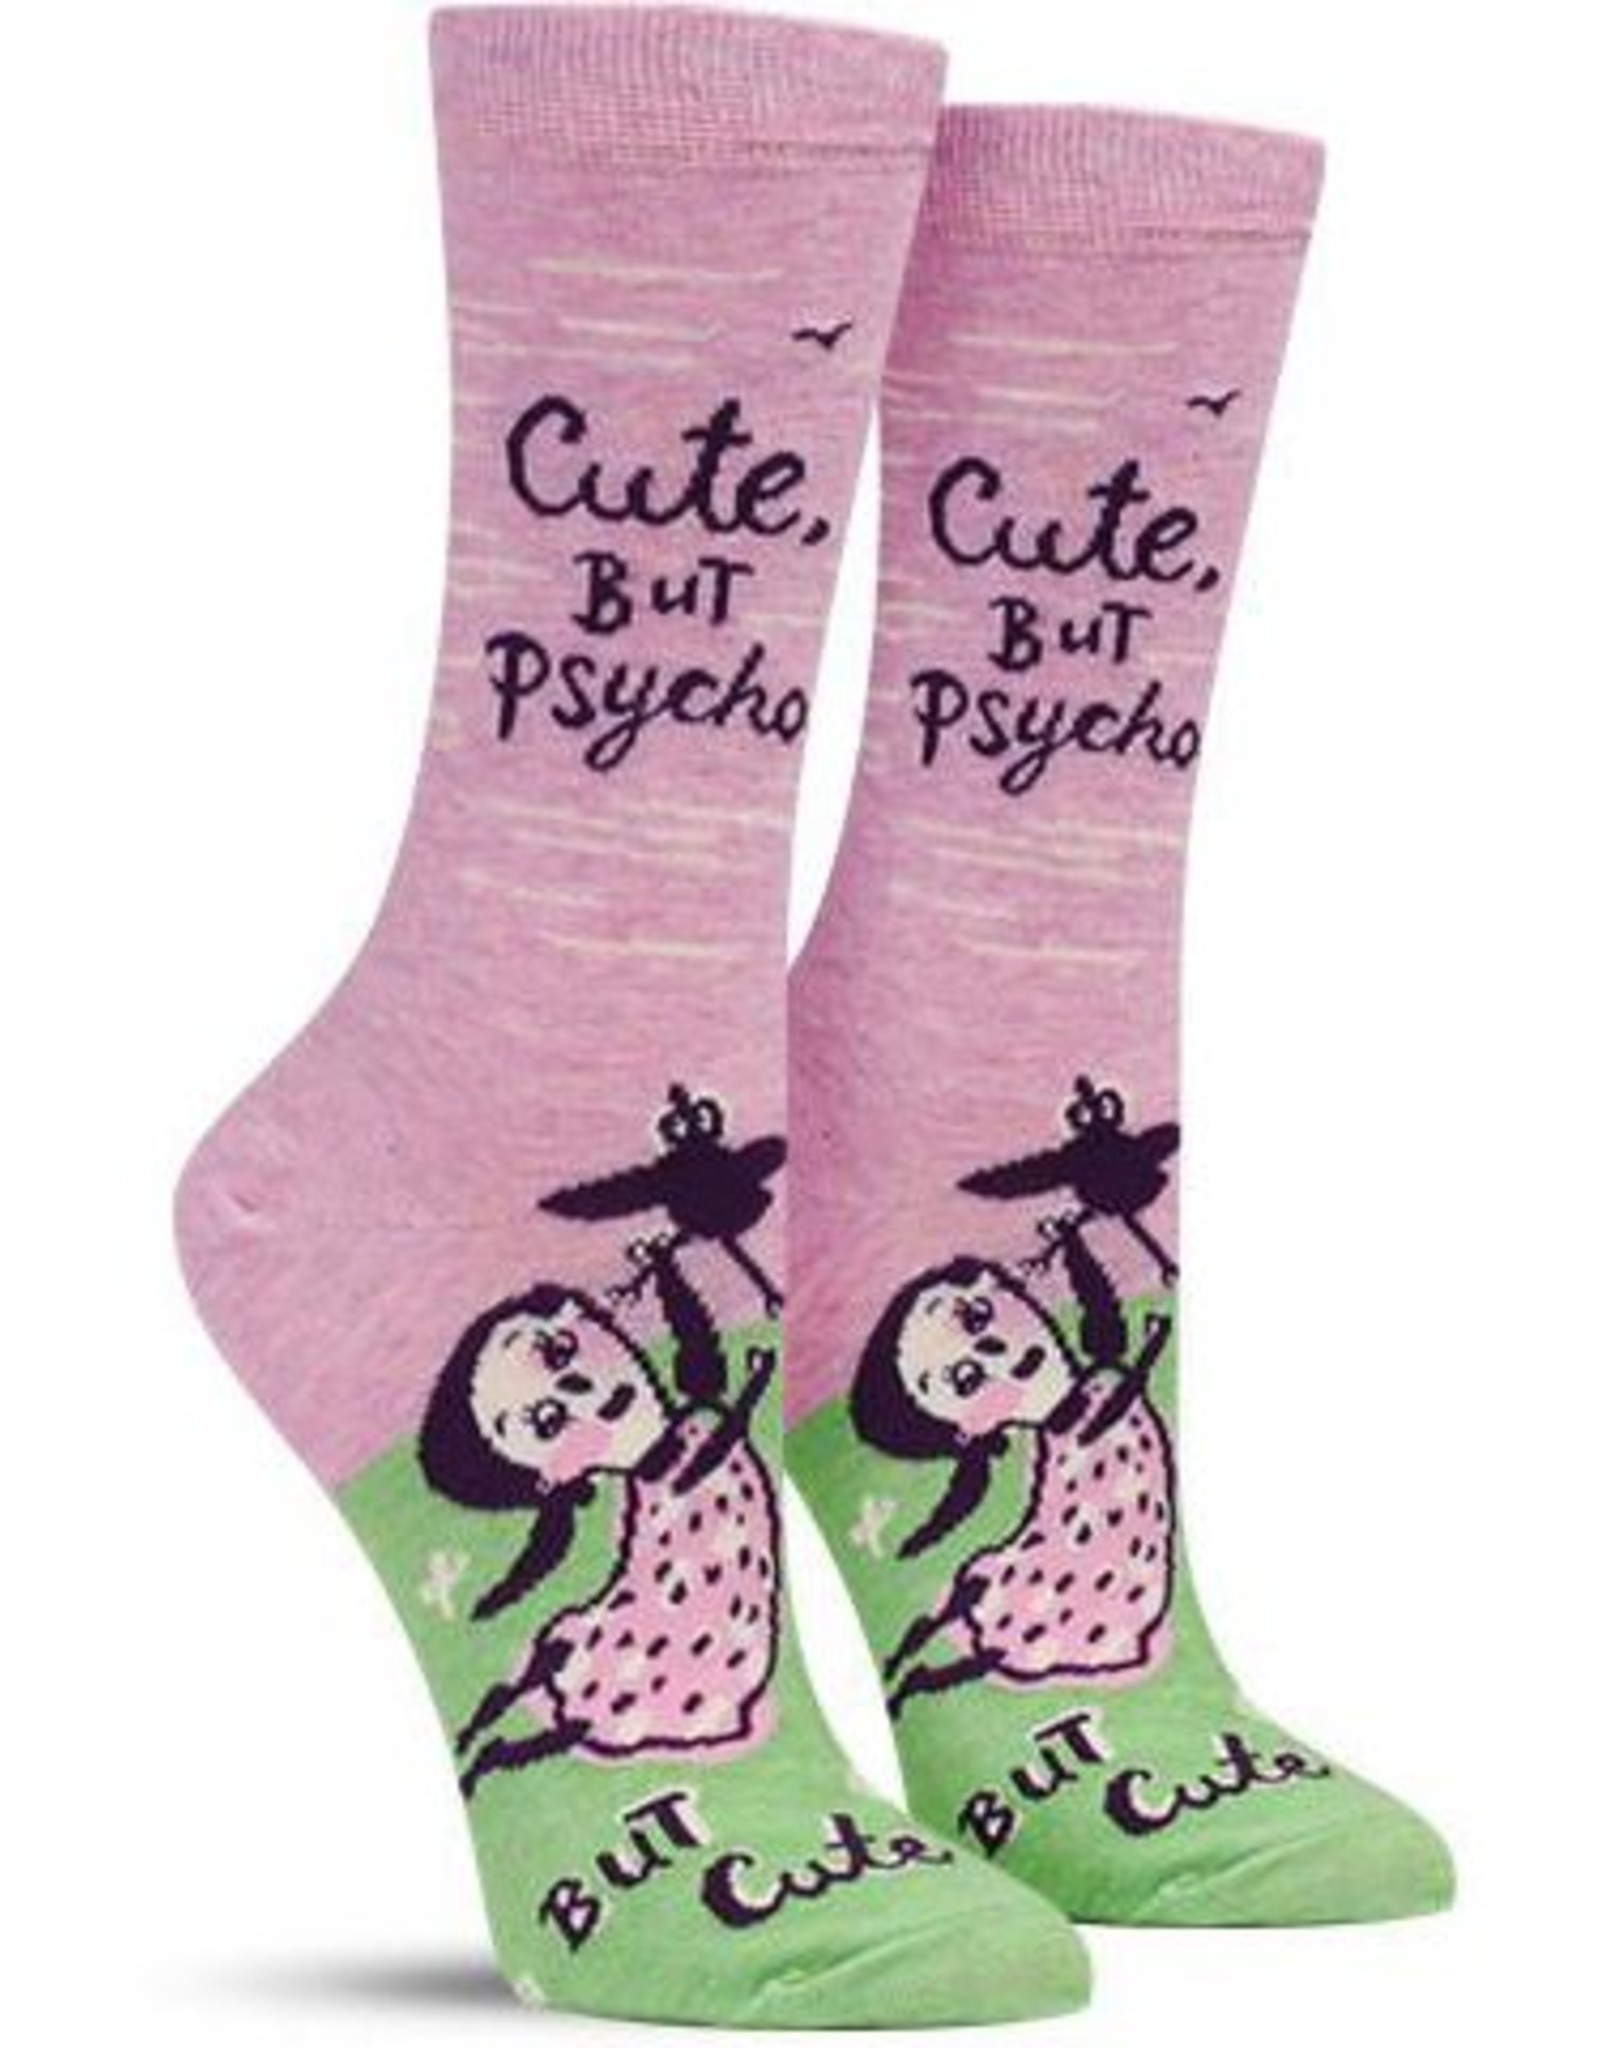 Cute, But Psycho Women's Crew Socks